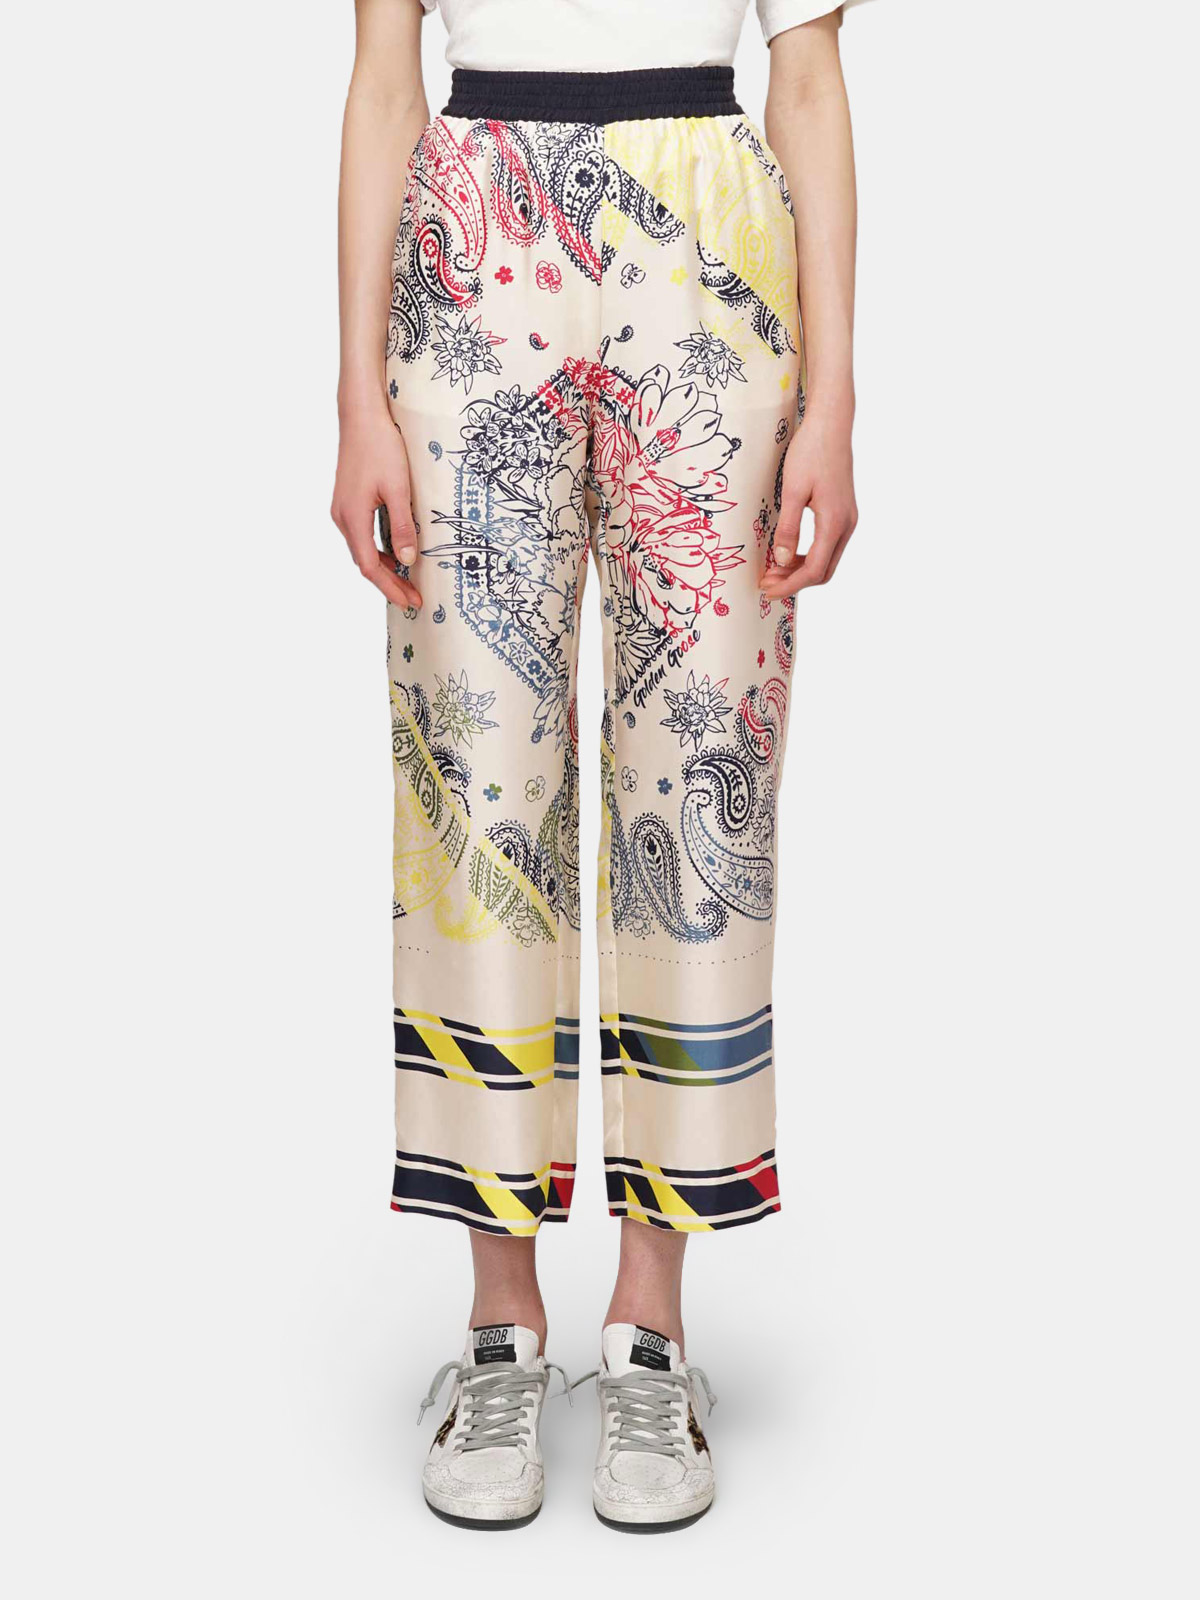 Golden Goose - Silk joggers with floral paisley motif in